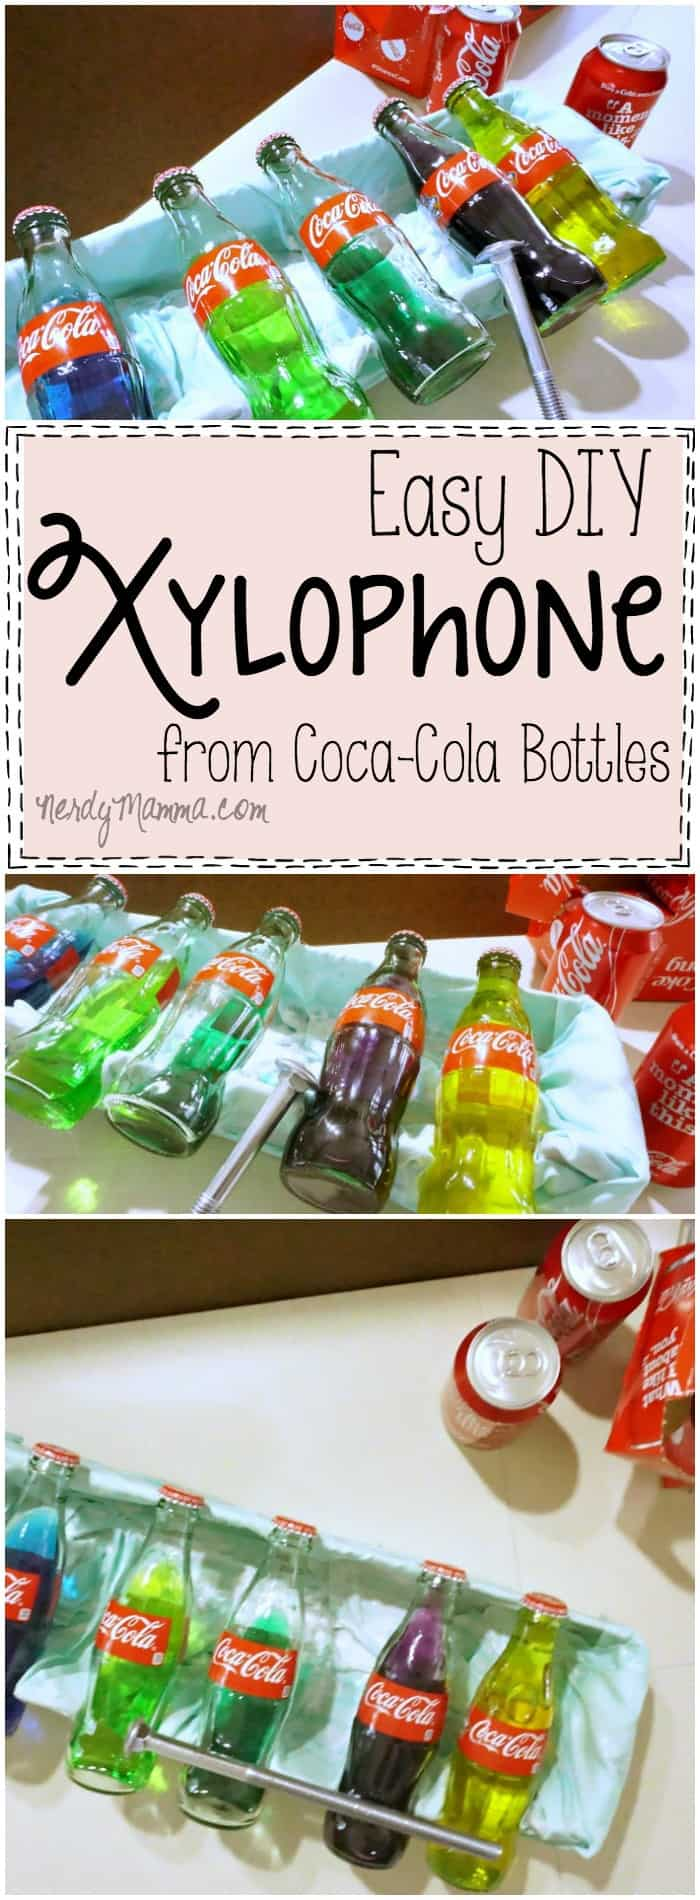 This DIY Xylophone project is so cute--and EASY! I totally want to make this! LOL!